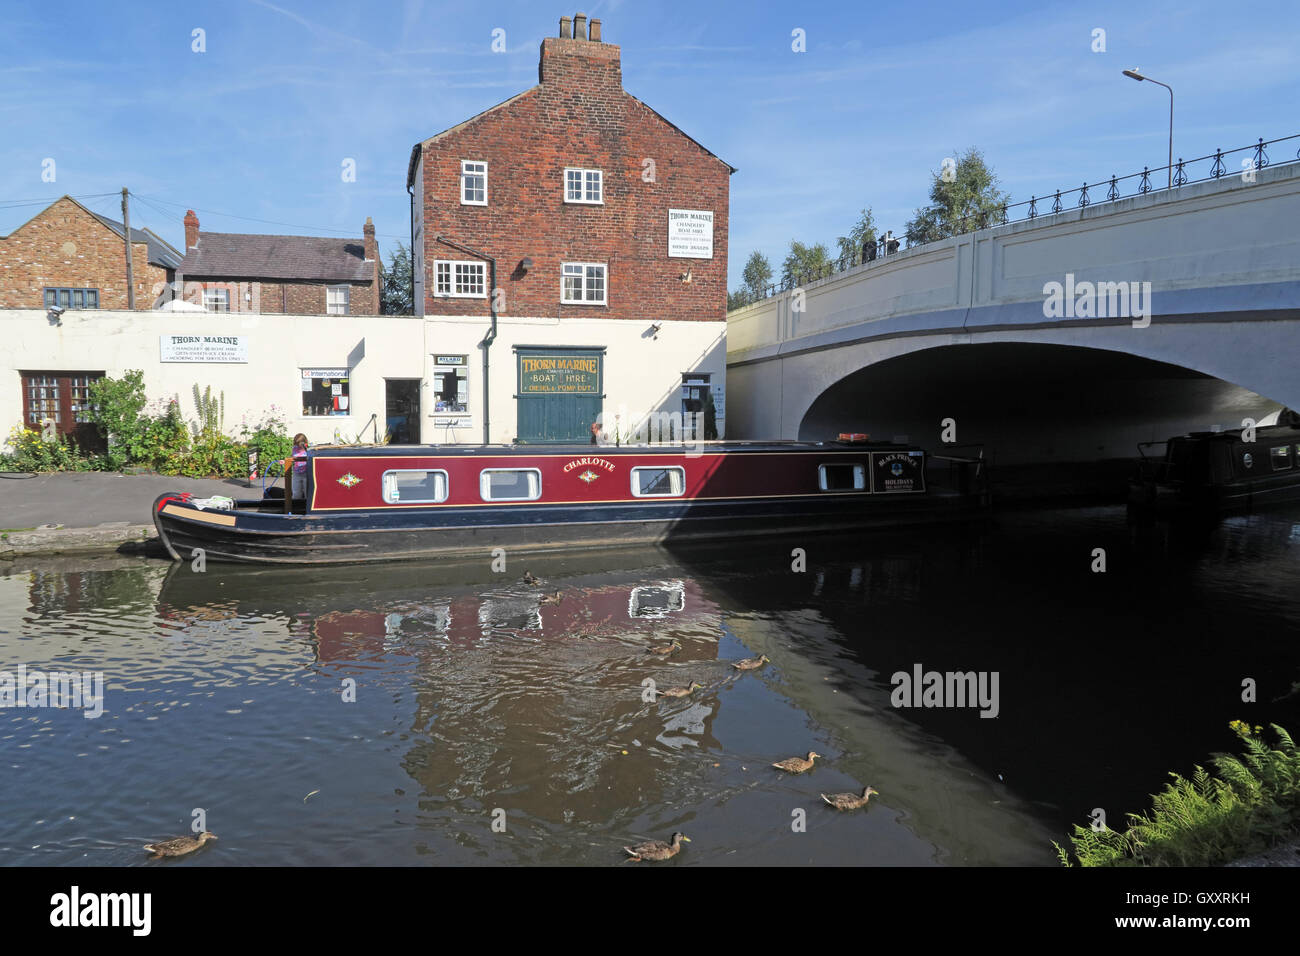 Thorn Marine Boatyard and shop,Stockton Heath,Warrington,England - Stock Image